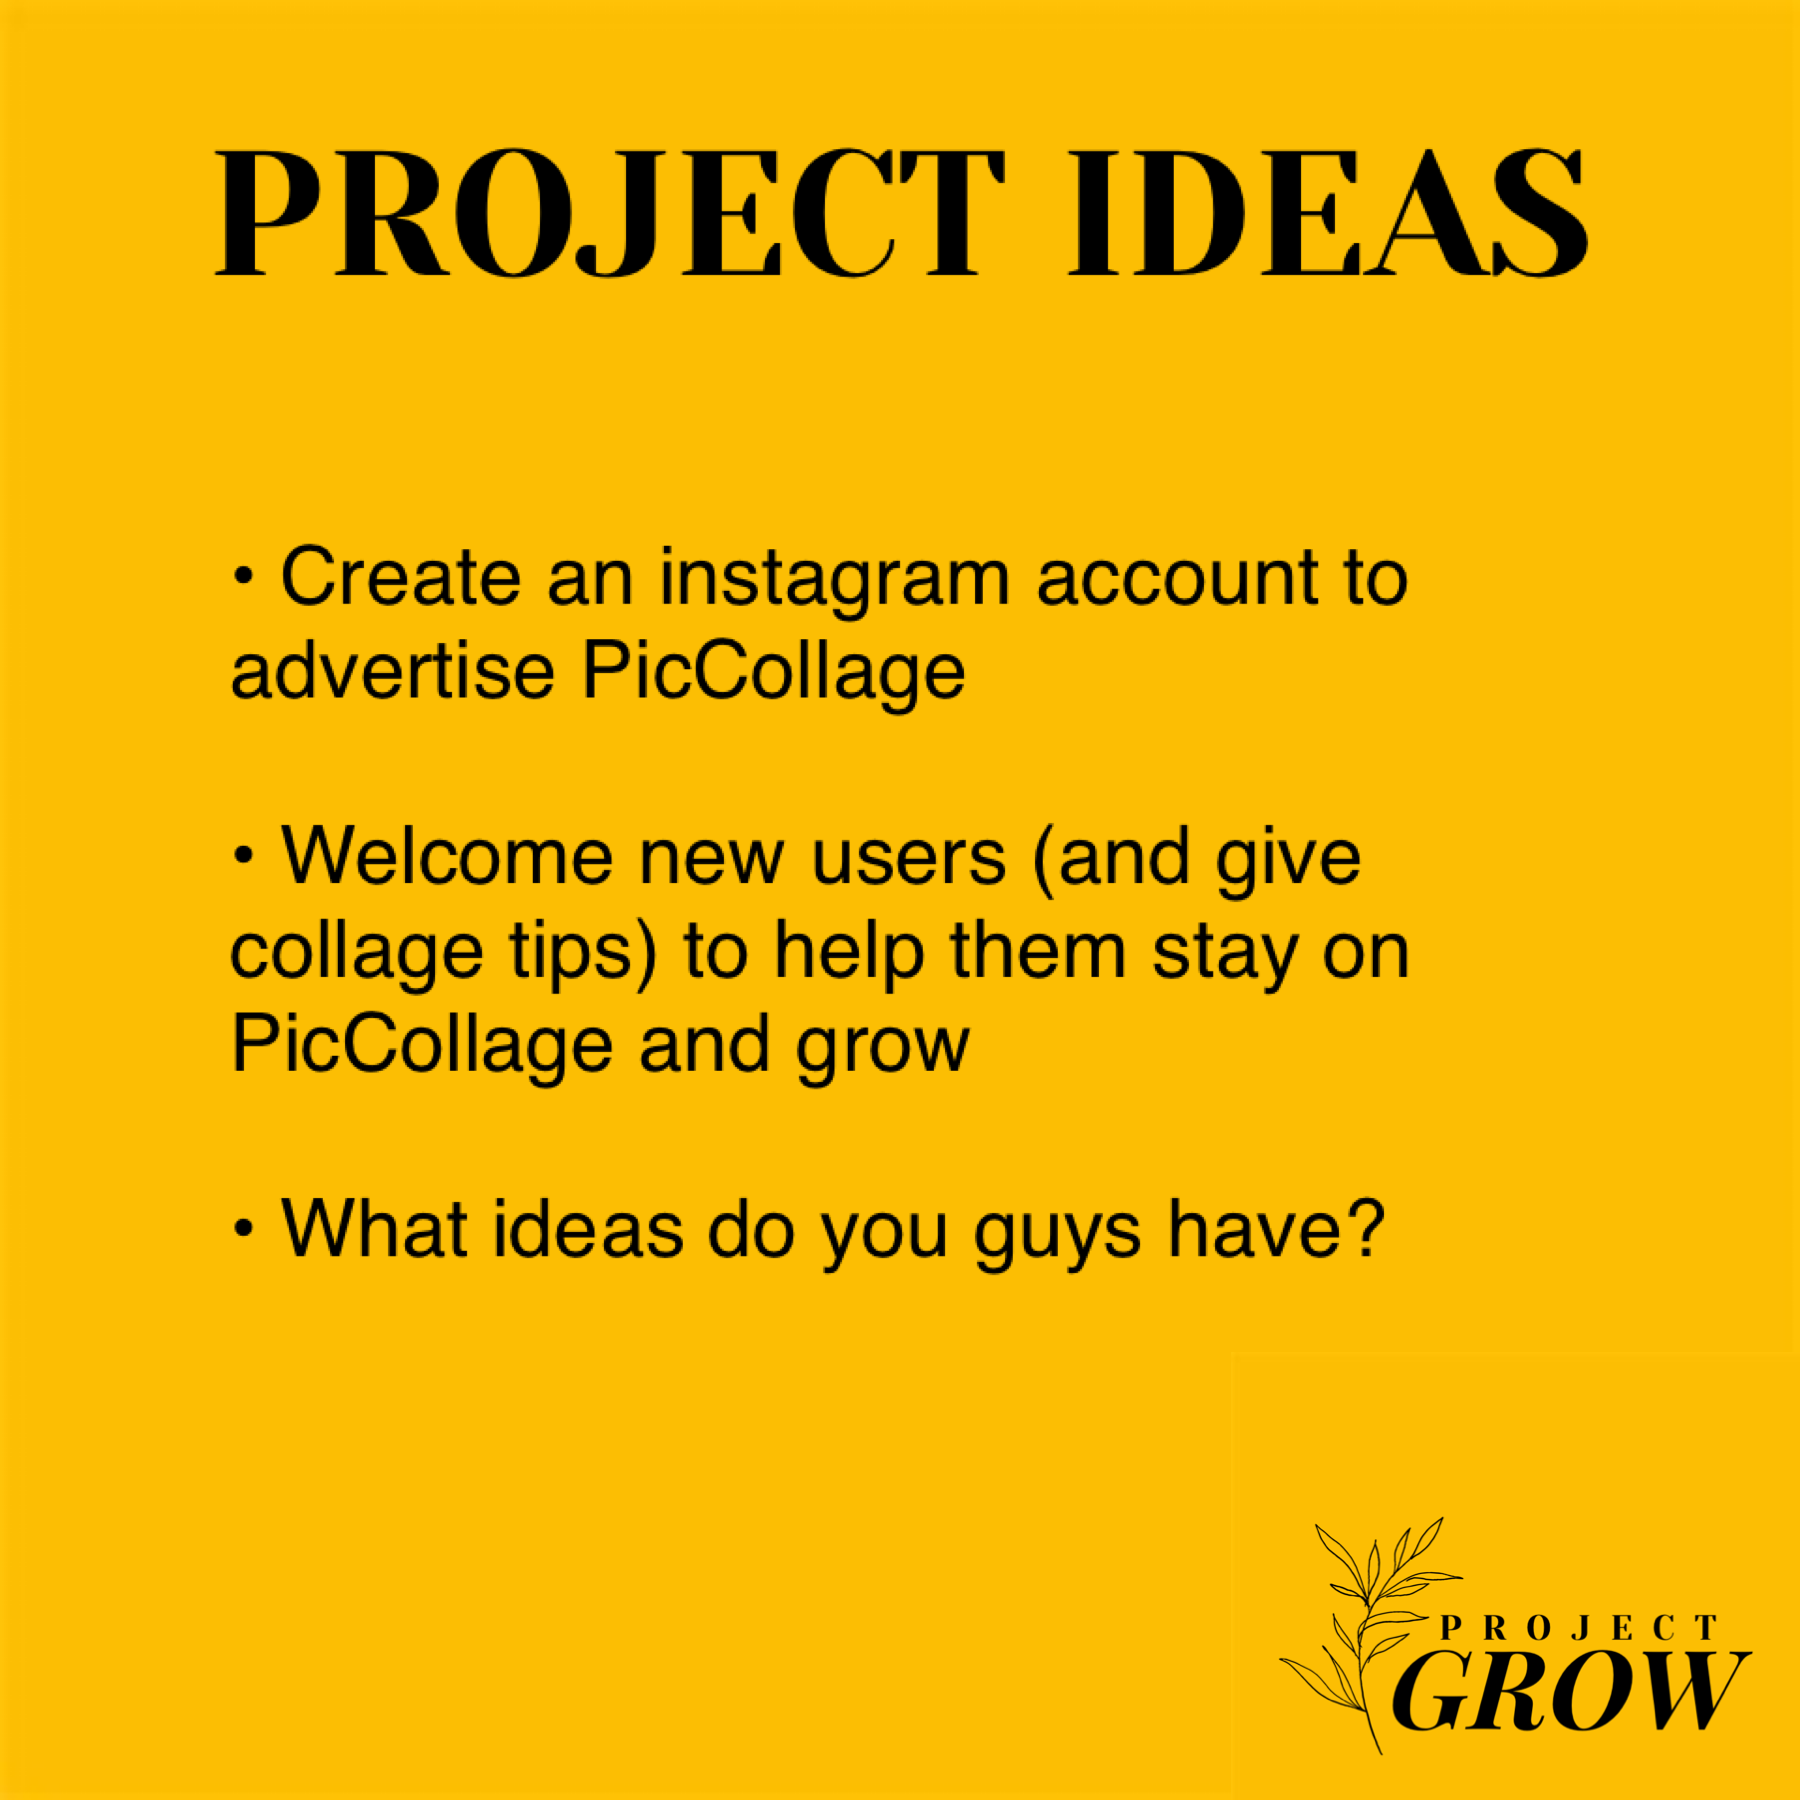 || PROJECT IDEAS ||